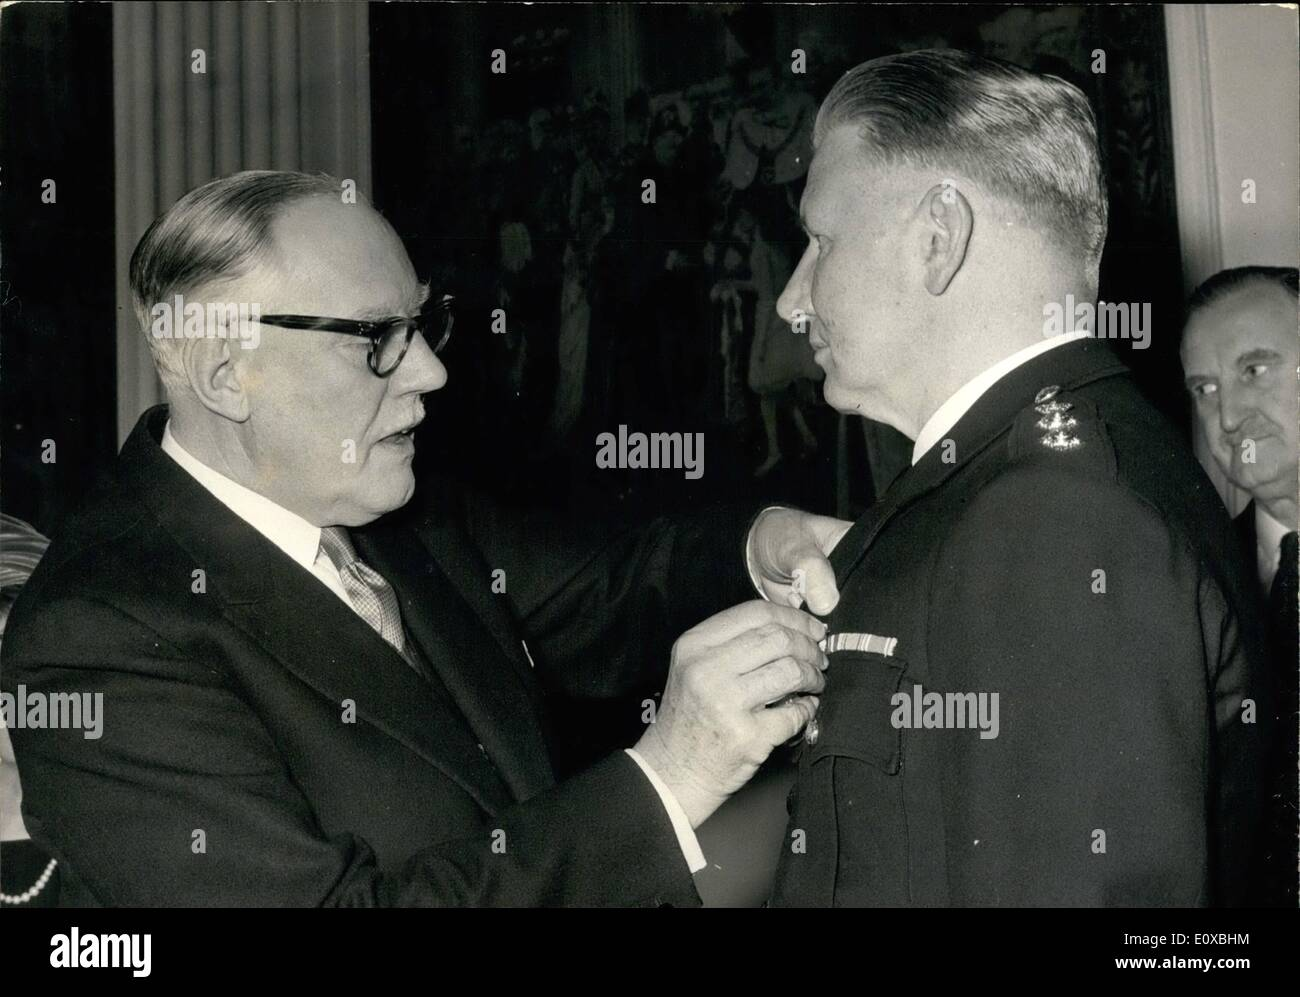 Mar. 03, 1966 - Lord Mayor presents queens Police Medal. The Lord Mayor of London, Sir Lionel Denny , this afternoon presented the Queen's Police Medal to Chief Superintendent Bertram Flatt, at the Mansion House. Photo shows The Lord Mayor of London pins the Queen's Police Medal on Chief Supt. Bertram Flatt at the Mansion House this afternoon. - Stock Image